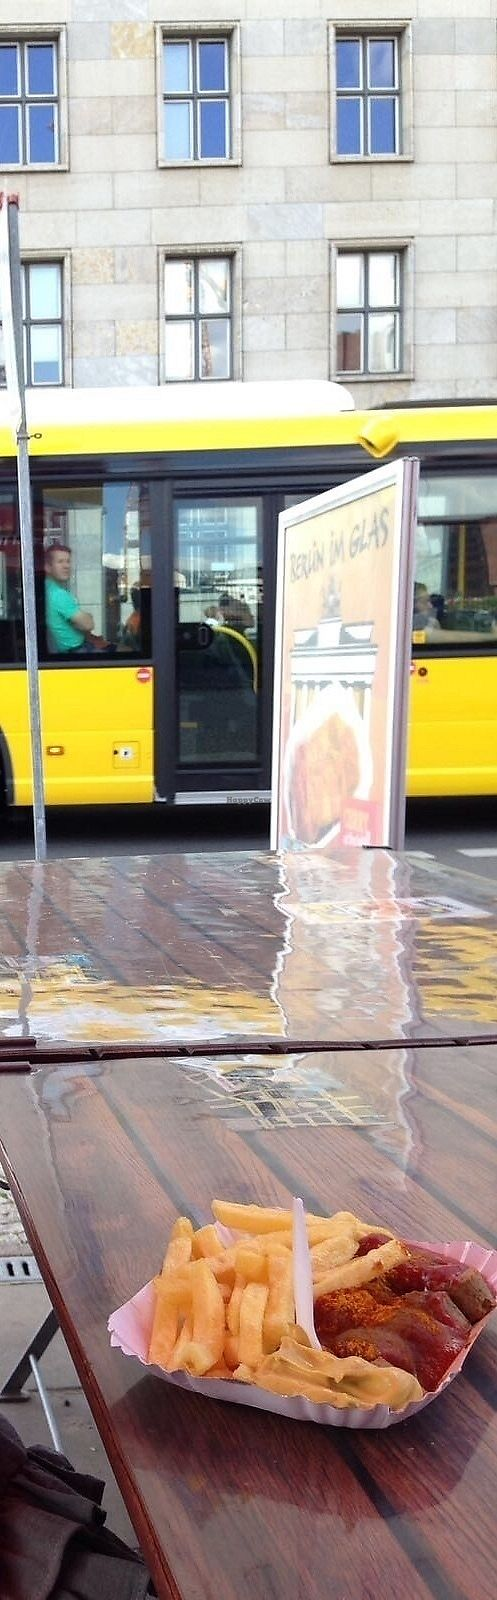 """Photo of Curry at the Wall - Food Stand  by <a href=""""/members/profile/avocado_jess"""">avocado_jess</a> <br/>Vegan currywurst and chips at outside seating <br/> December 26, 2017  - <a href='/contact/abuse/image/77725/339167'>Report</a>"""